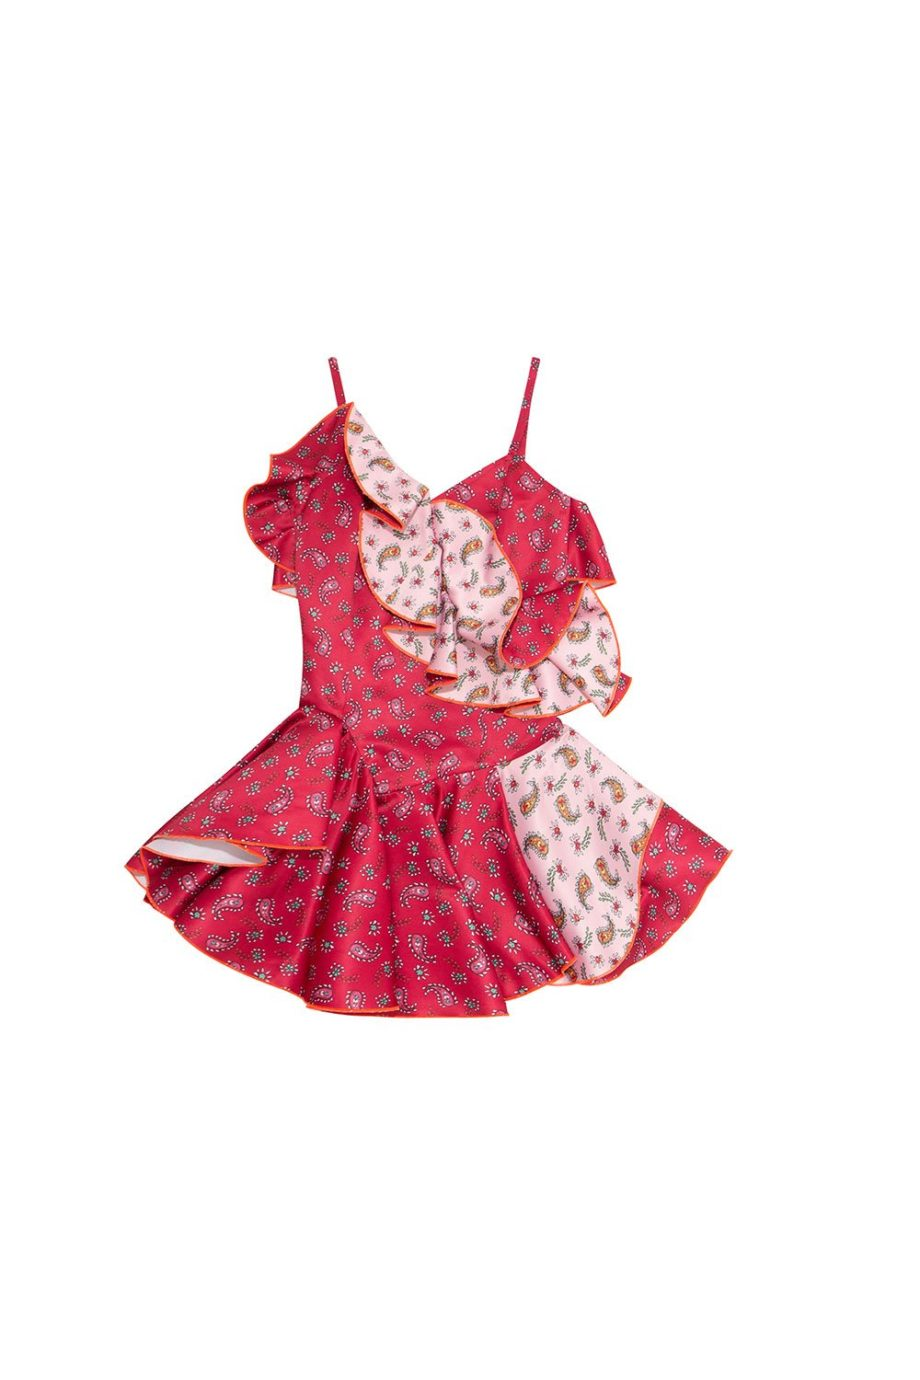 RED  &  PINK  RUFFLE